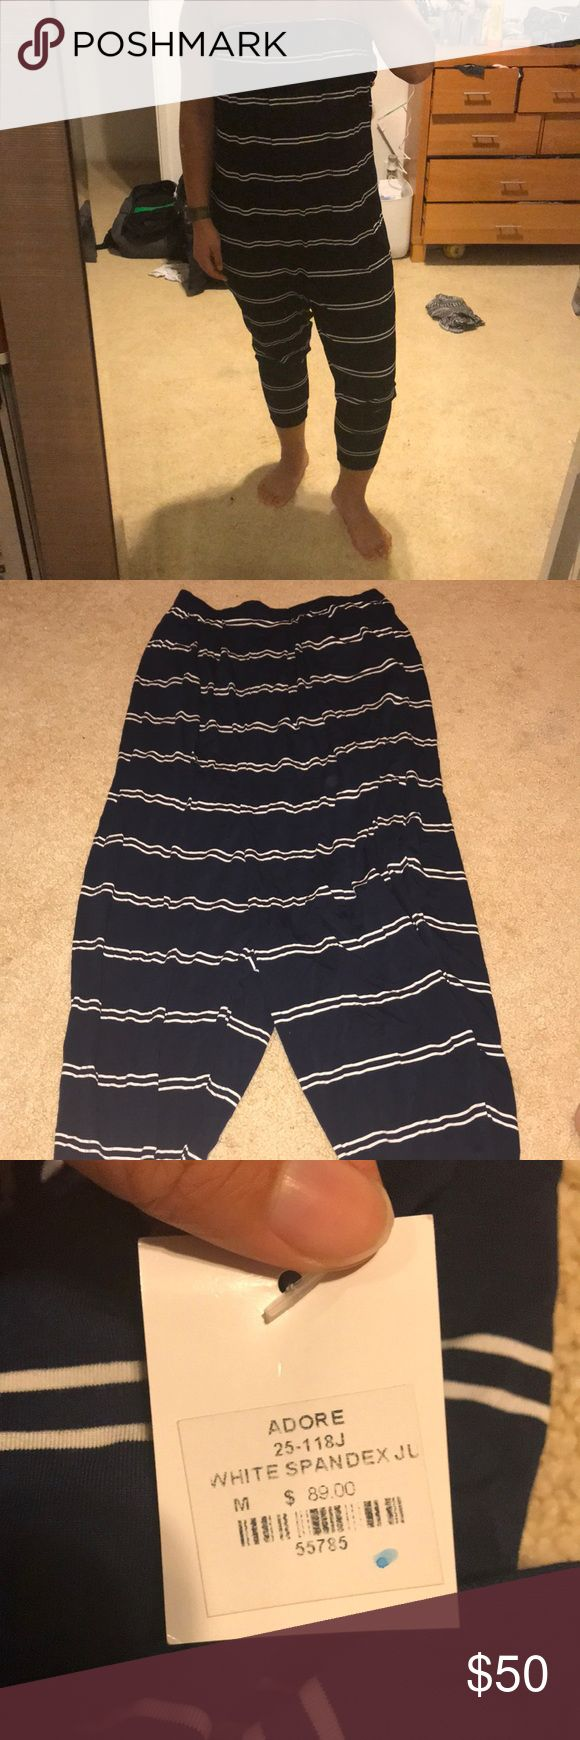 Navy blue and white stripped jumper Never worn with tags Adore Other